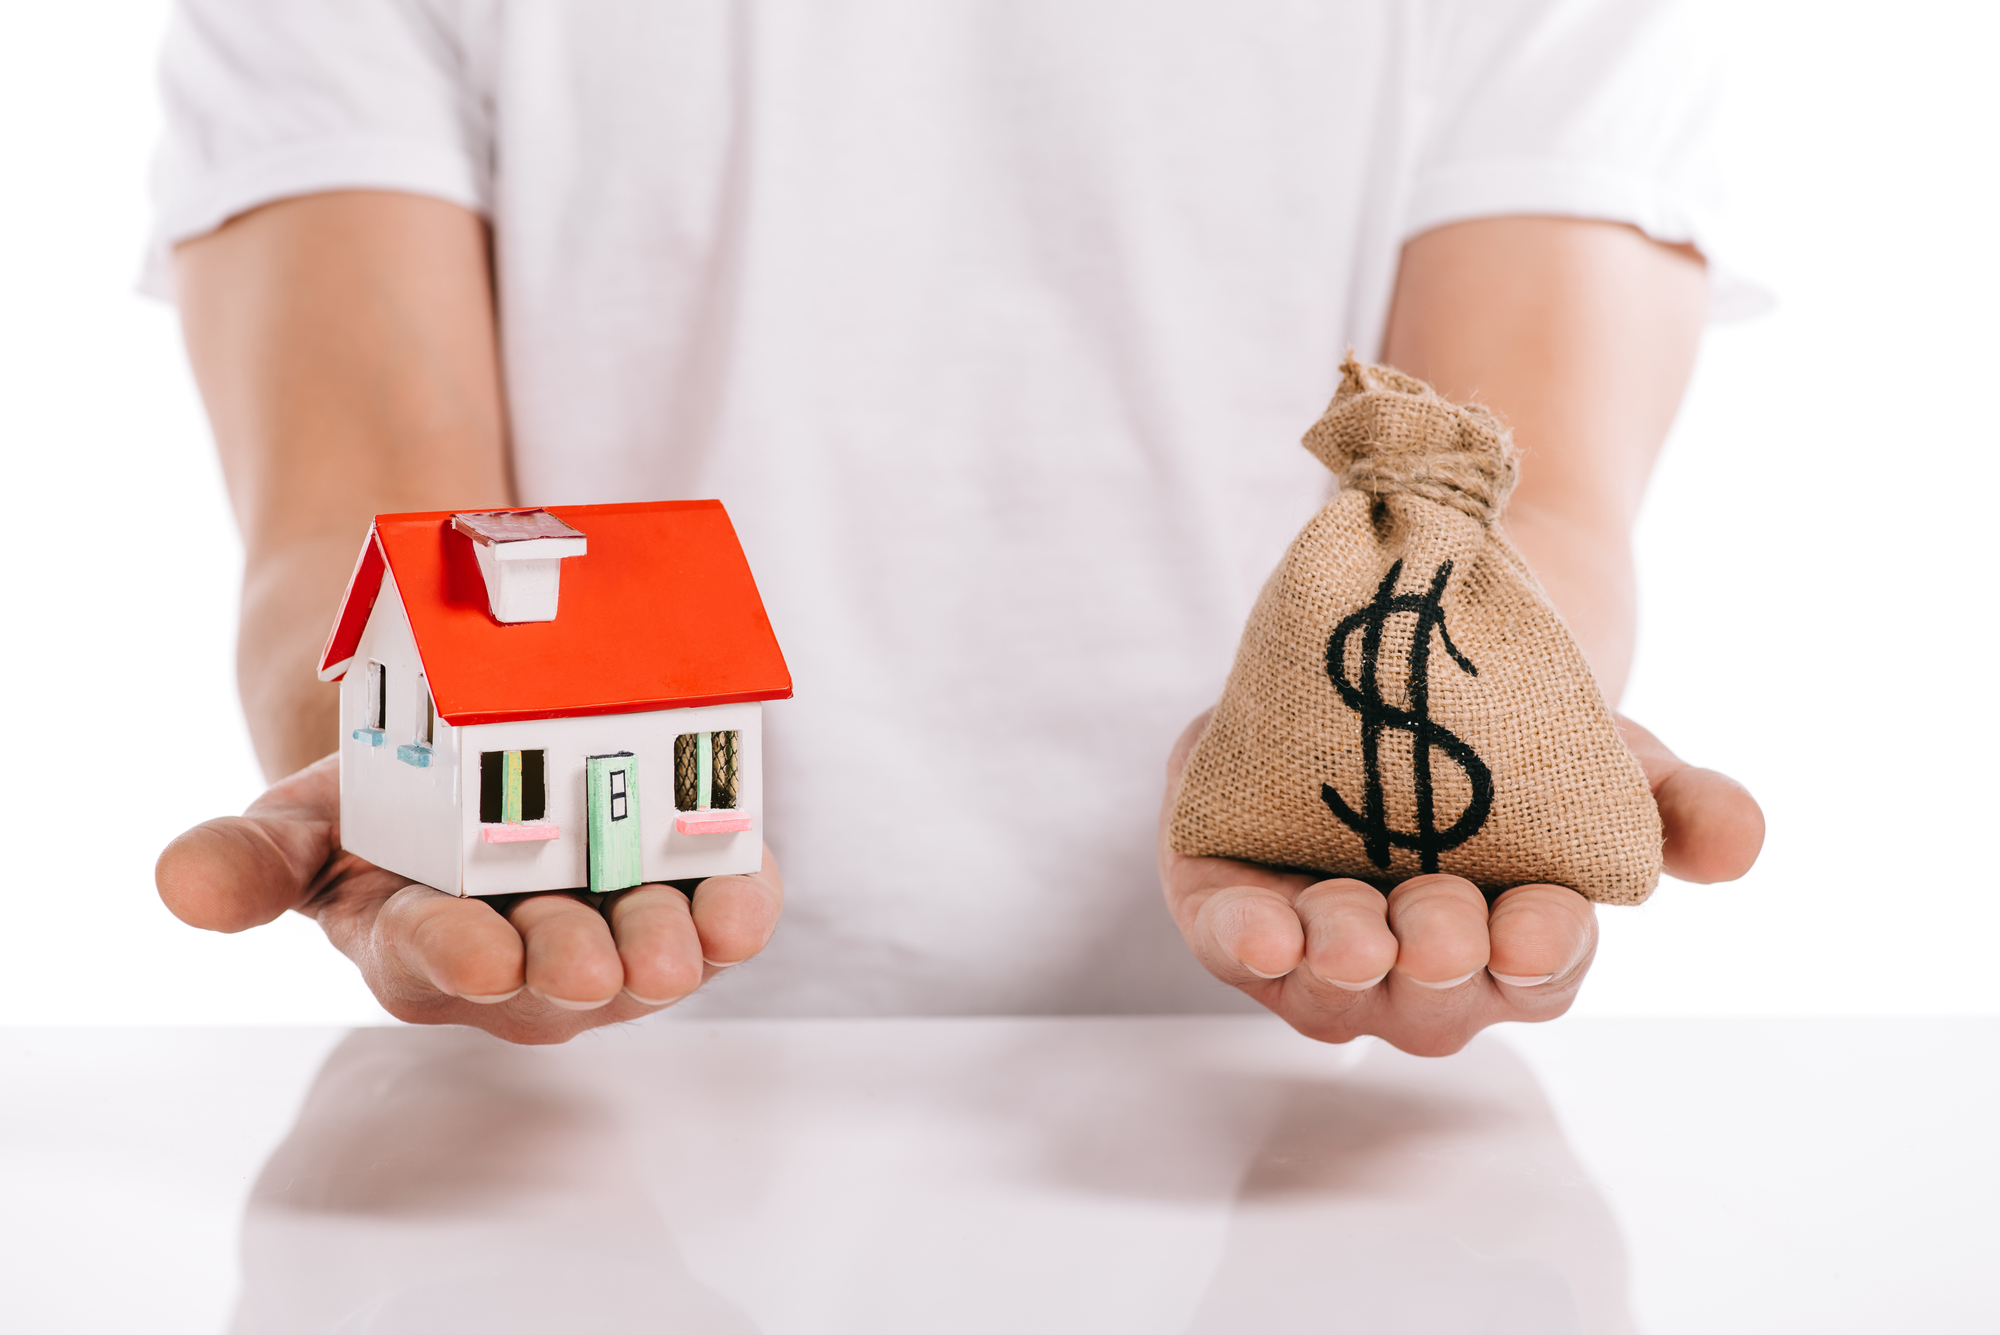 Cropped view of man holding house model and moneybag isolated on white, mortgage concept